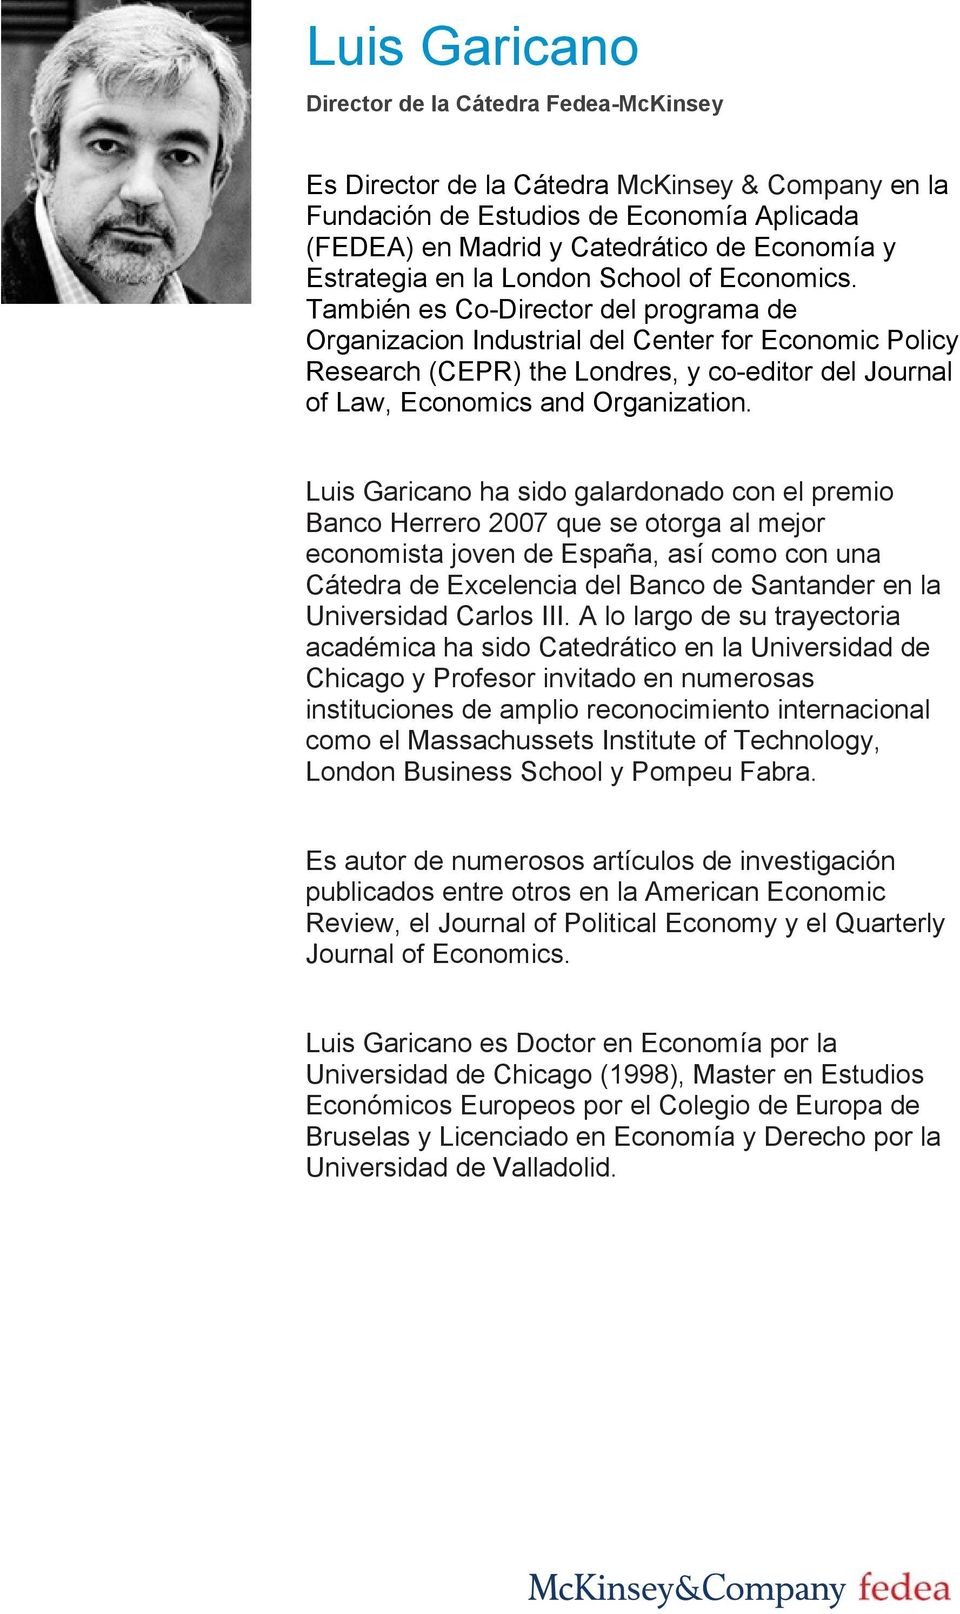 También es Co-Director del programa de Organizacion Industrial del Center for Economic Policy Research (CEPR) the Londres, y co-editor del Journal of Law, Economics and Organization.